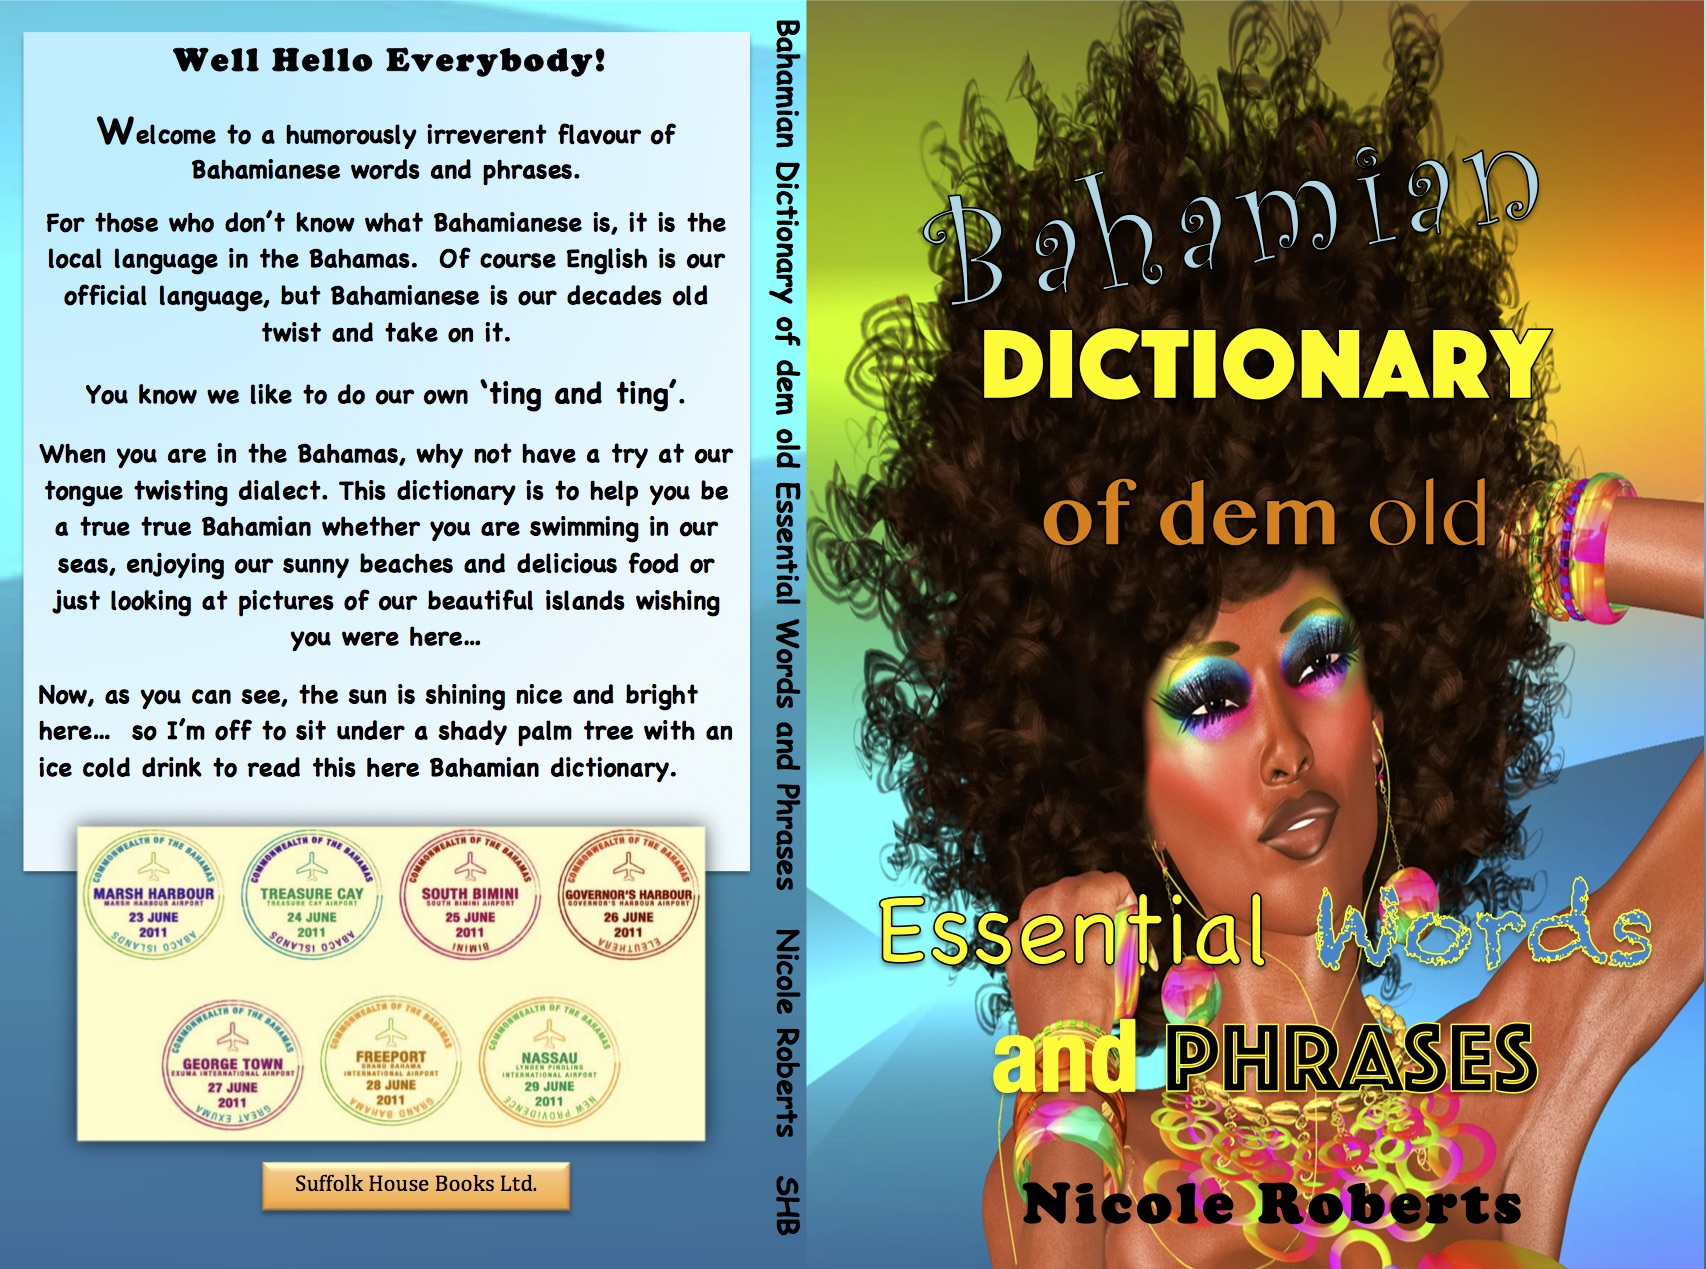 Bahamian Dictionary of dem old Essential Words and Phrases